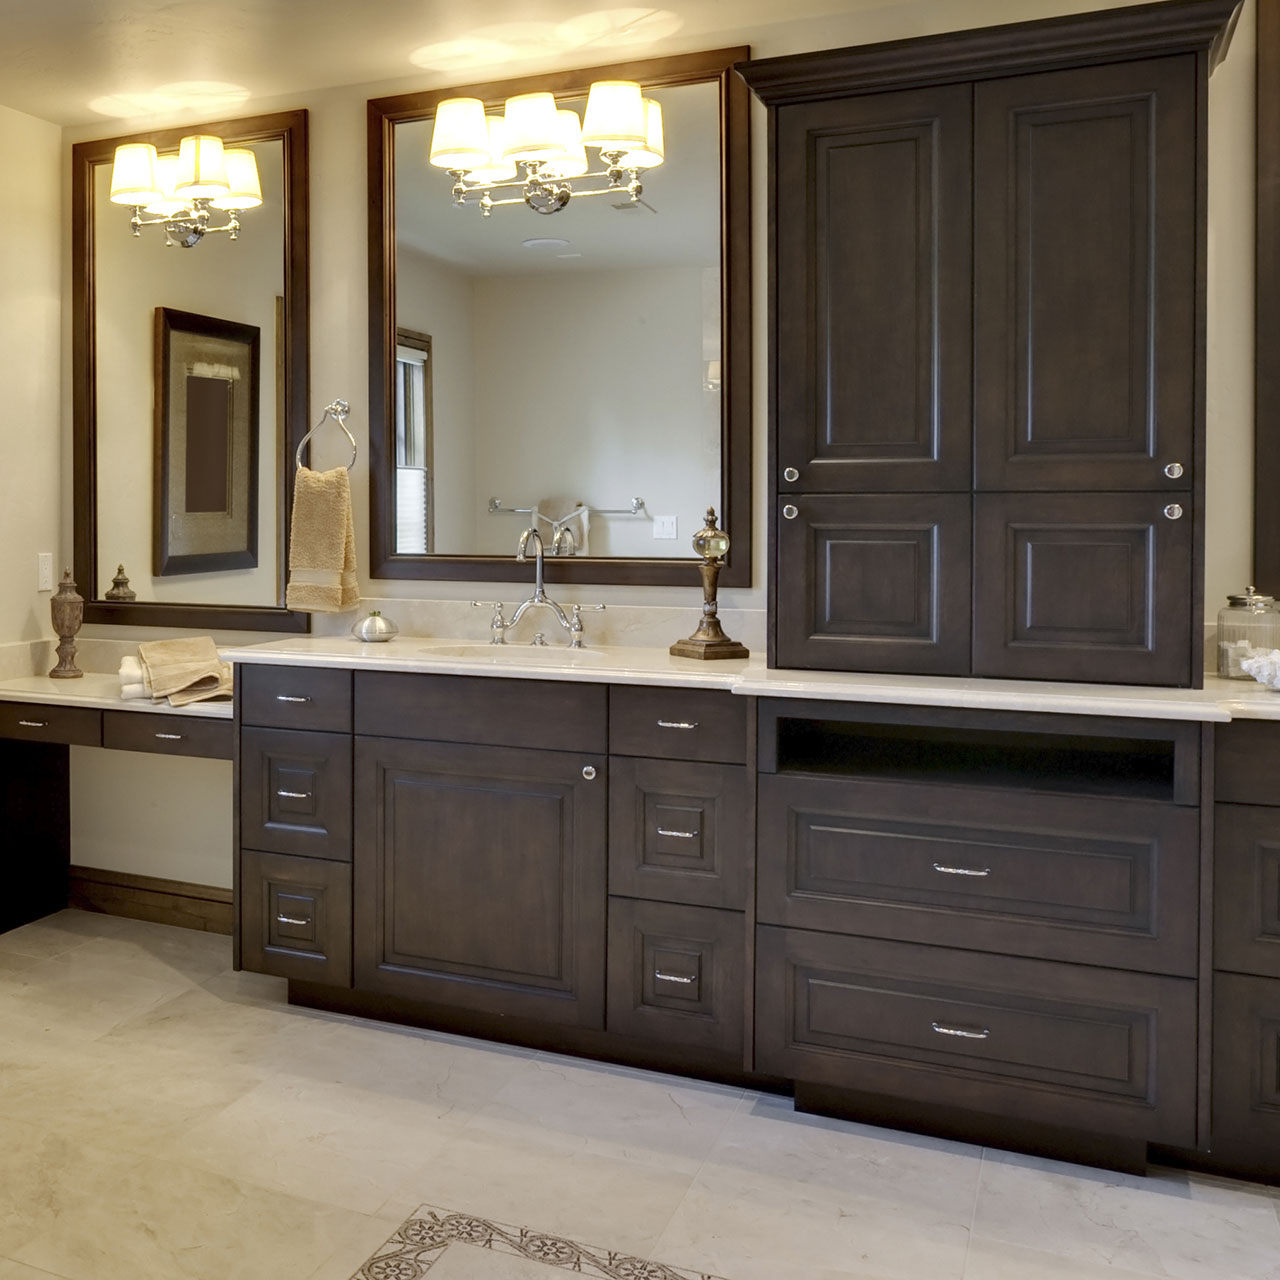 Kitchen Cabinets Made To Order: Custom Build Bathroom Cabinets & Made To Order Bath Vanities